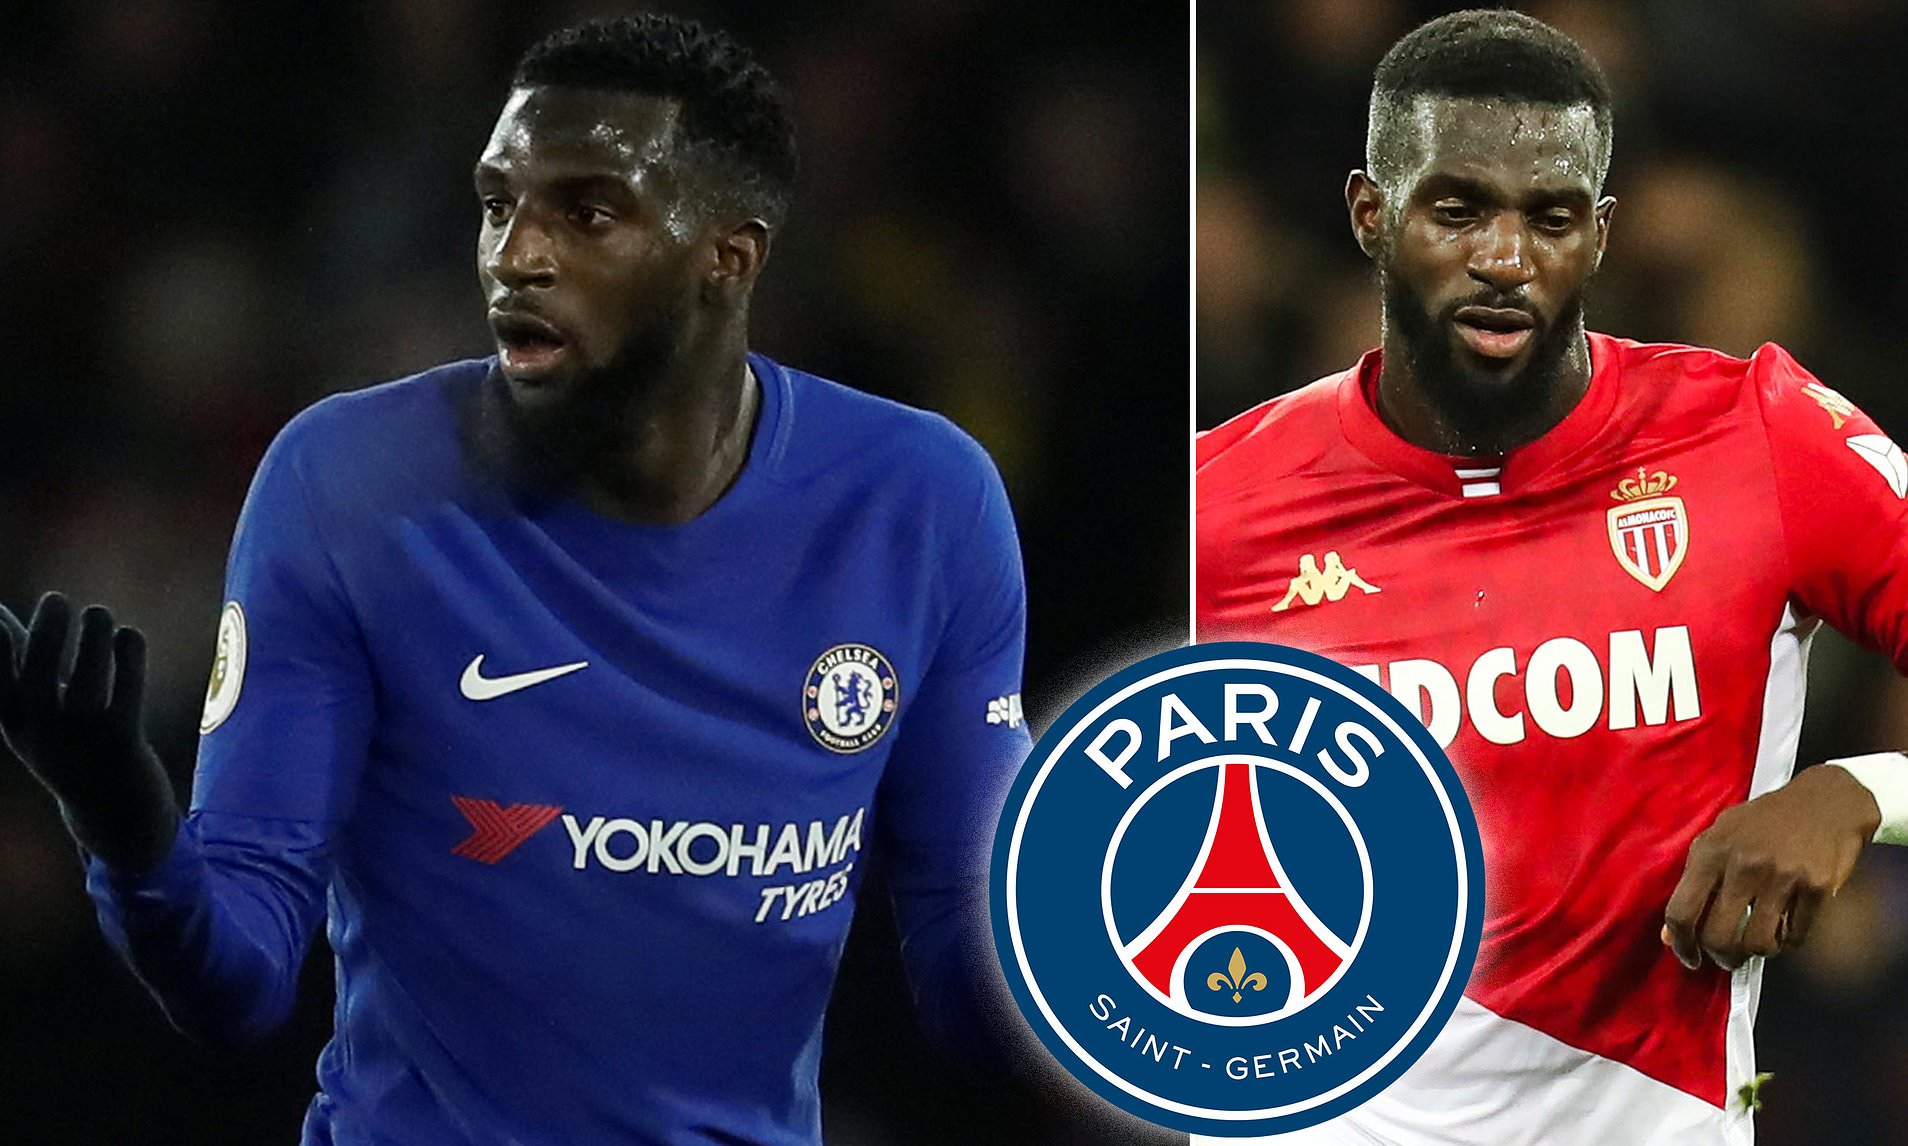 PSG have reignited their interest in Chelsea outcast Tiemoue Bakayoko, with The Blues reportedly demanding £32 million from the Paris side.